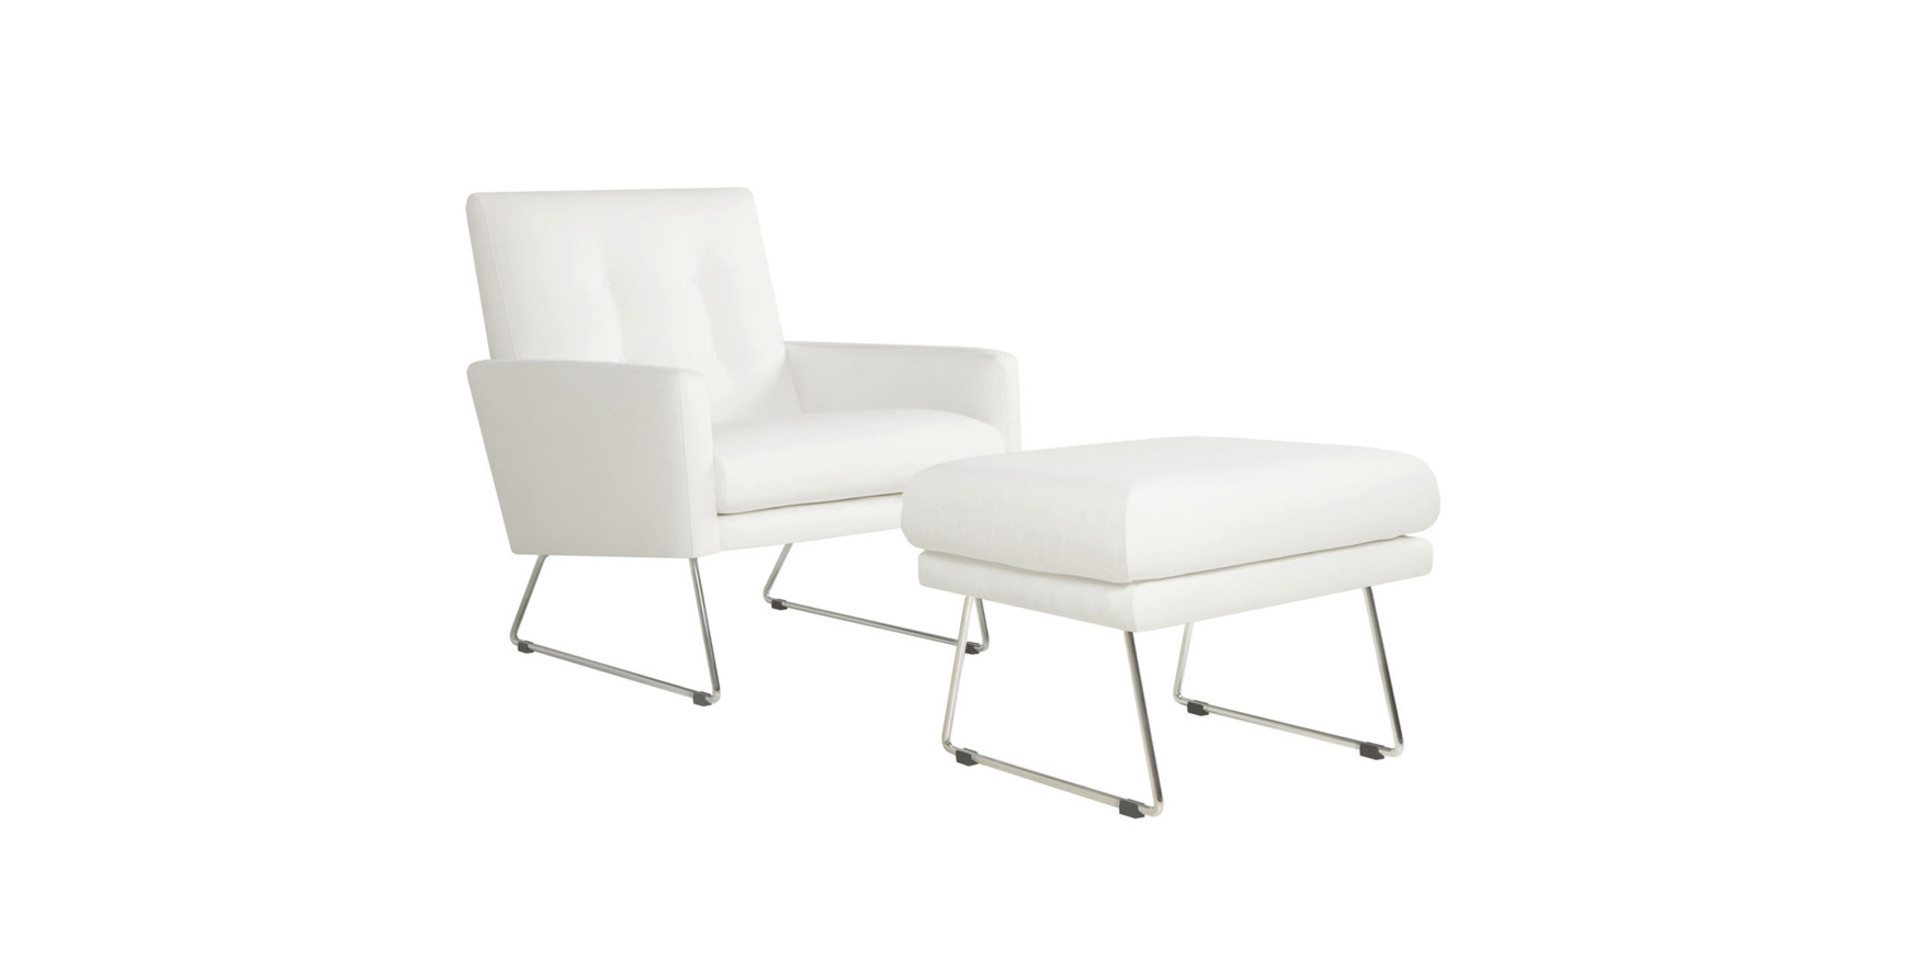 sits-max-fauteuil-pouf-footstool_luis1_white_3